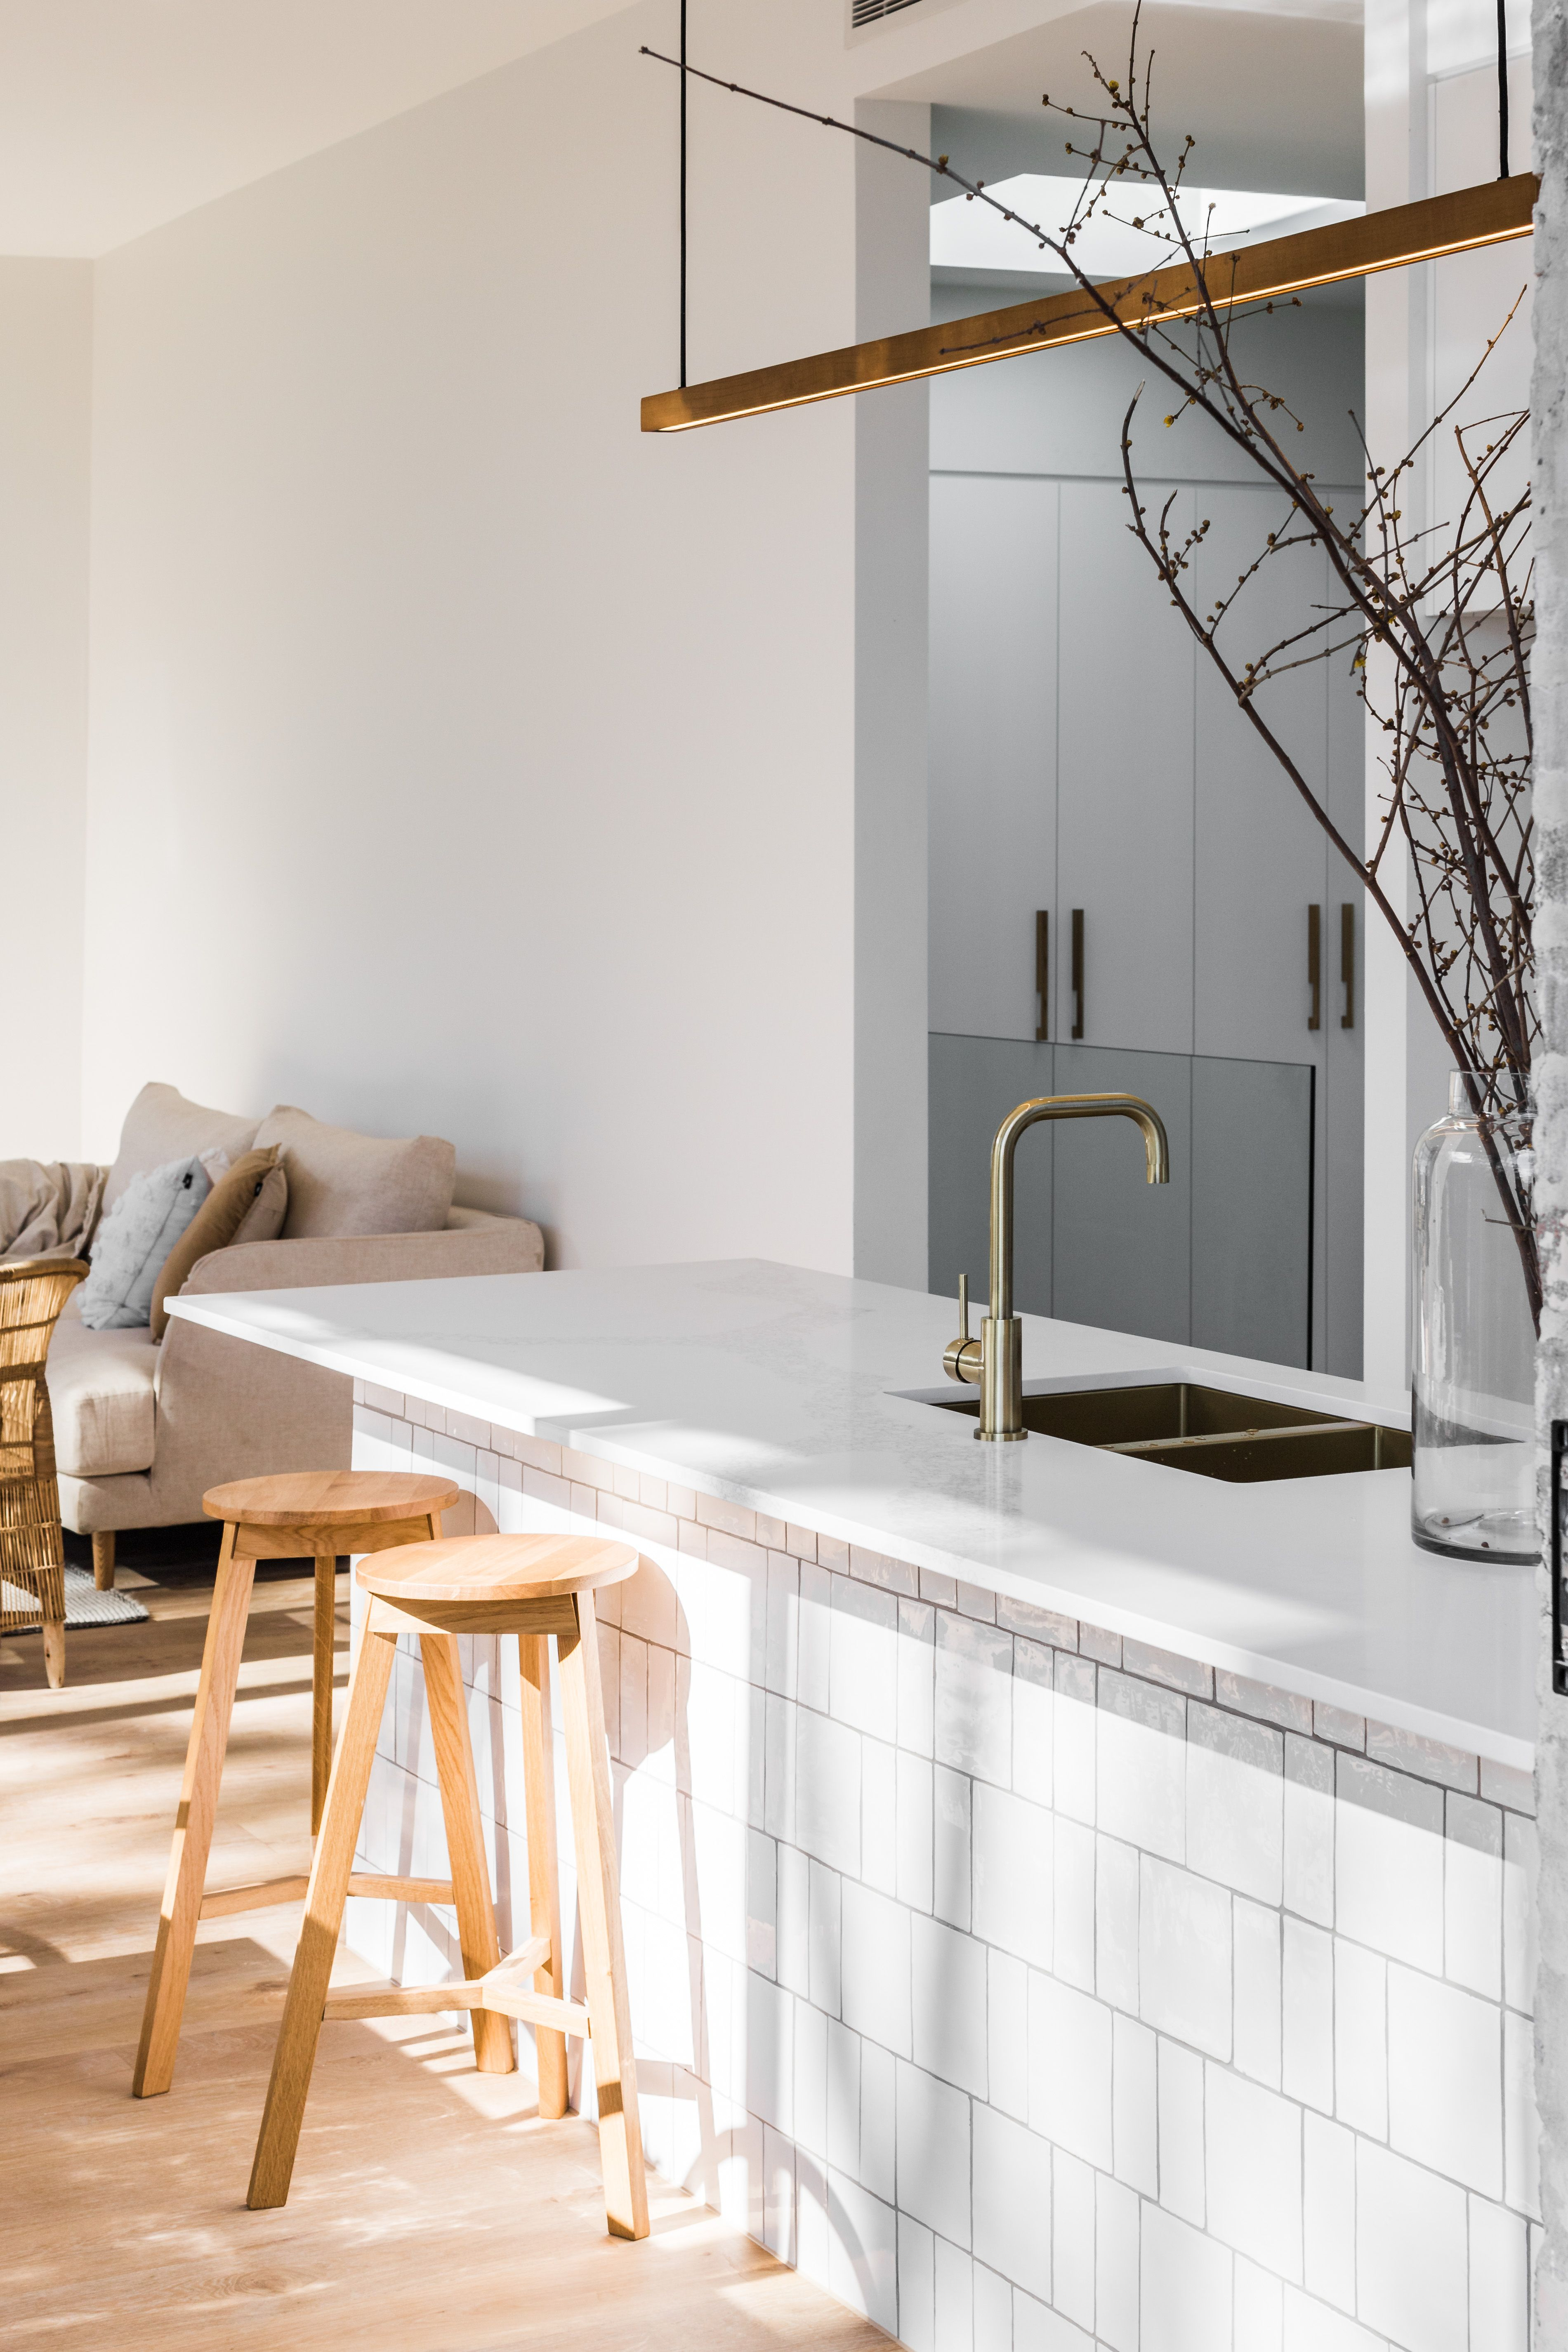 Shop The Tiles Featured In The Futureflip Projects To Create Your Own Look Image Credit A Futureflip Developmen New Homes Kitchen Renovation House Interior